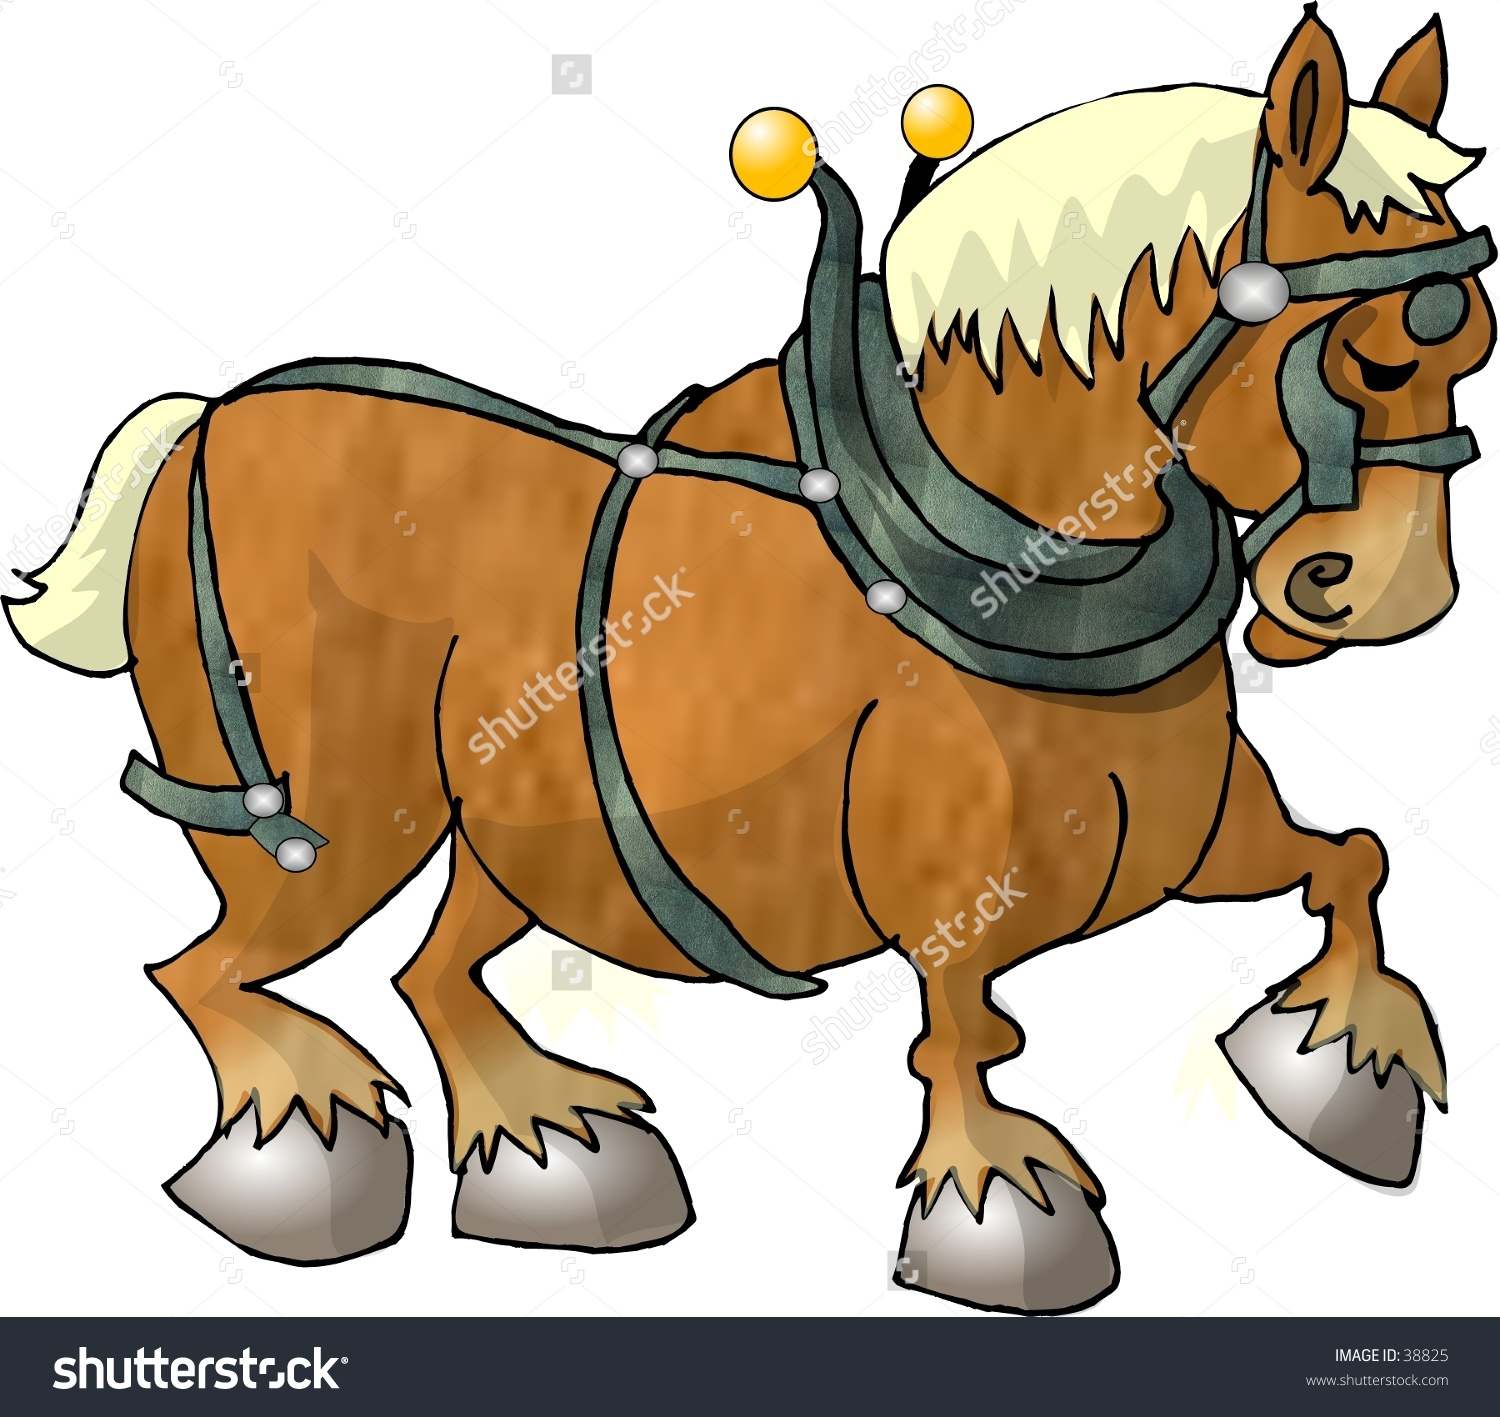 Clydesdale clipart #2, Download drawings